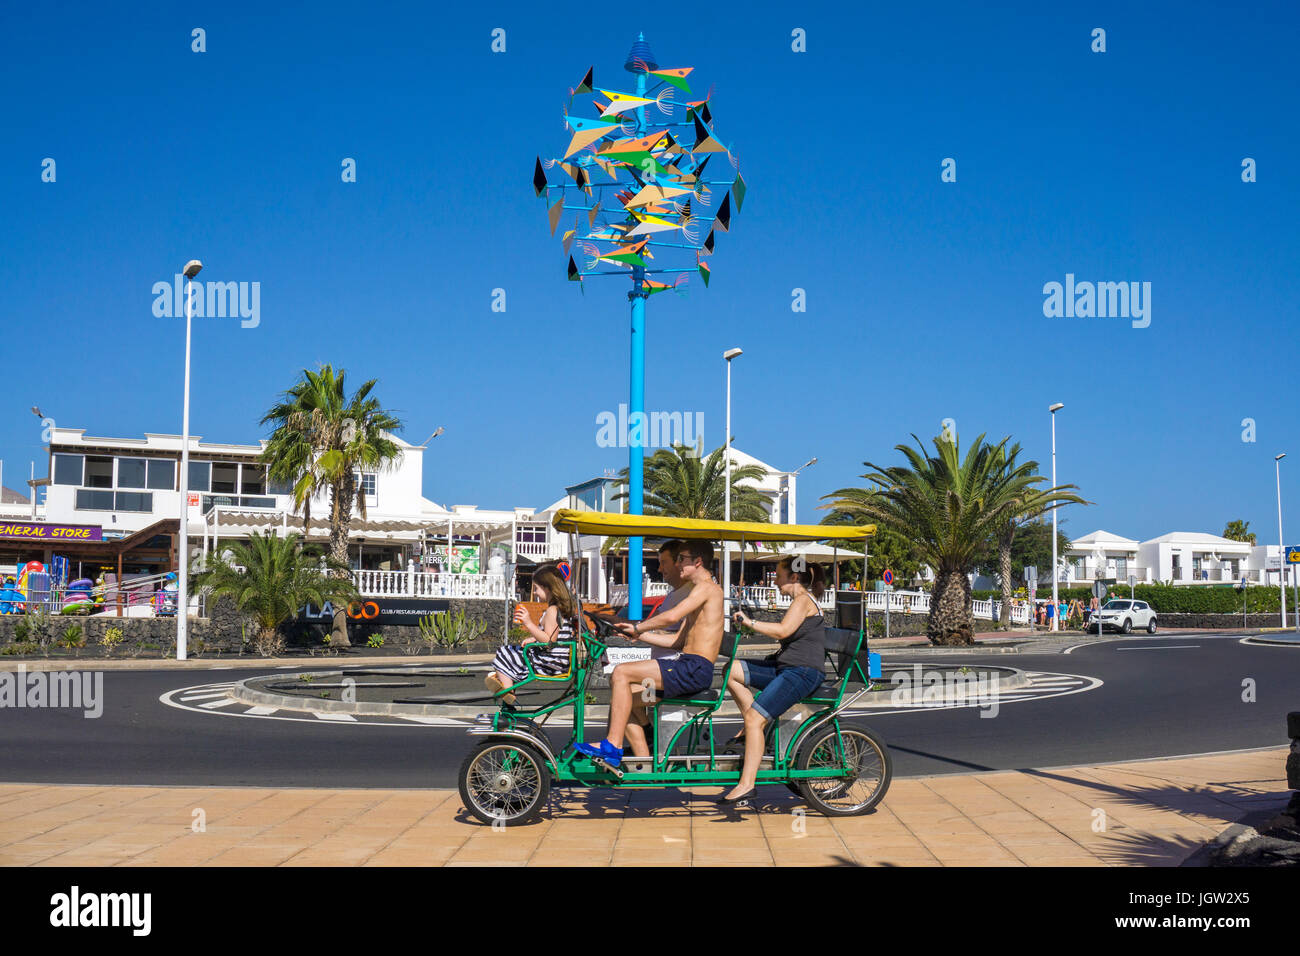 Tourists on 4-wheel biciyle at the colourful Wind chime 'El Robalo' of Cesar Manrique, Puerto del Carmen, - Stock Image